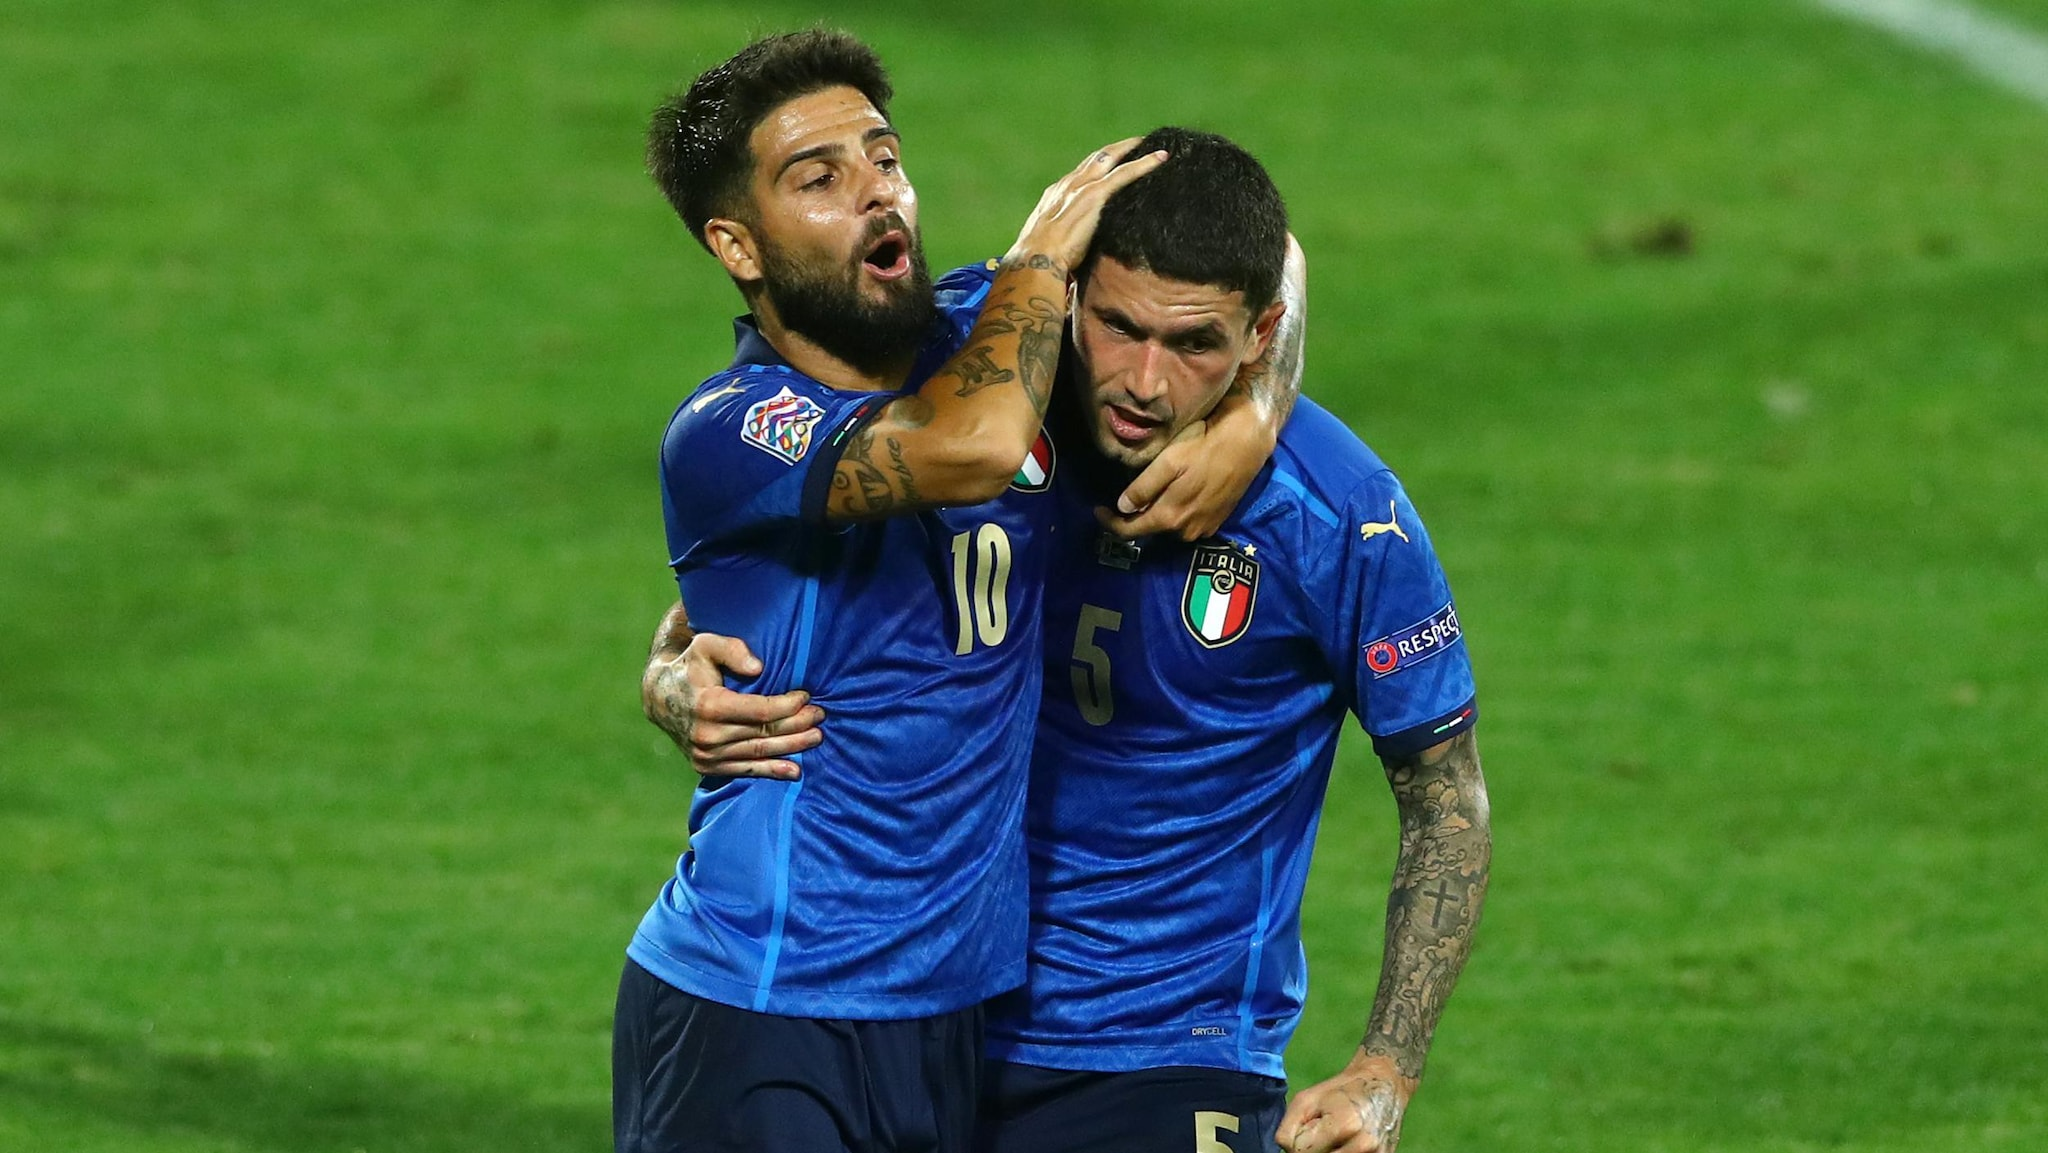 Netherlands vs Italy preview